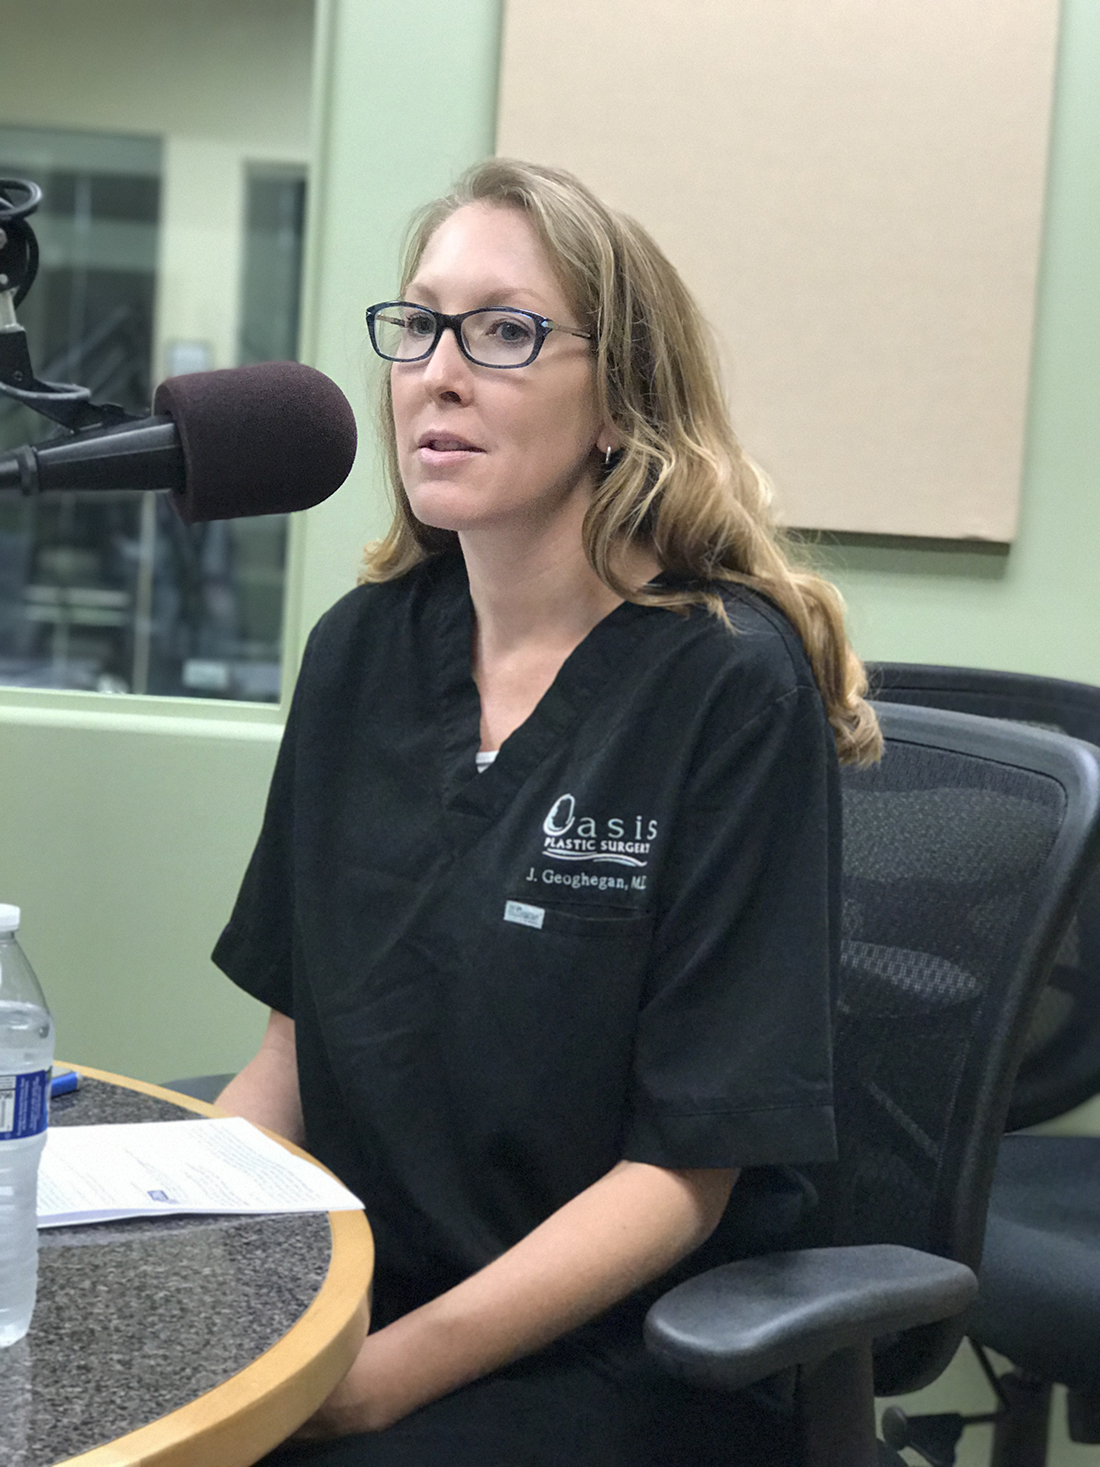 Dr Geoghegan was featured in a Business Leaders Spotlight for Money Radio 1510AM and 105.3FM